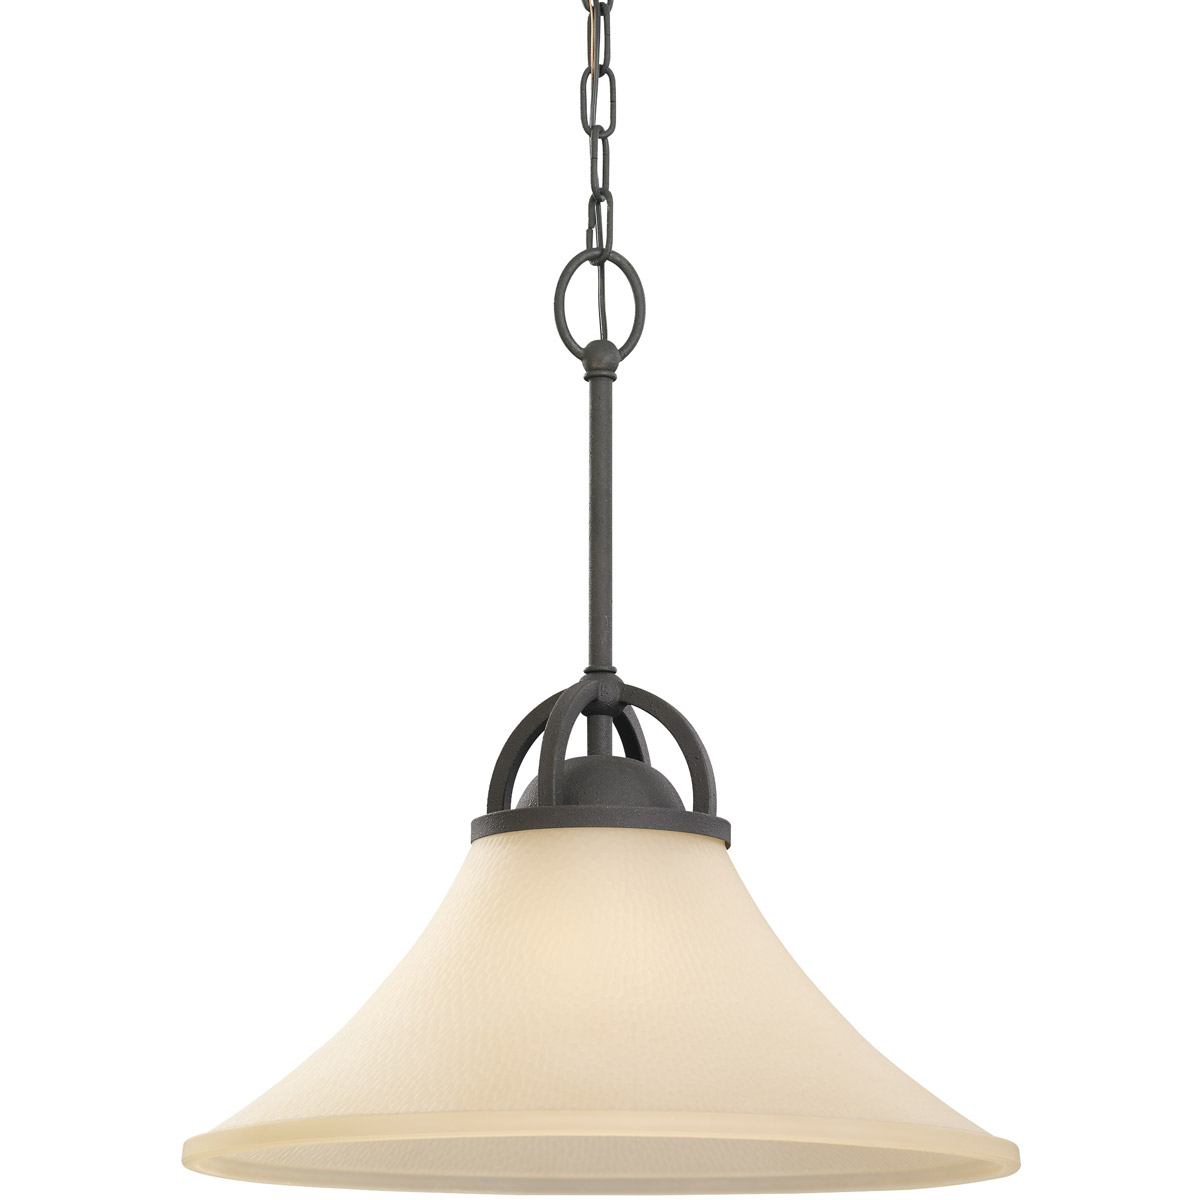 Sea Gull 65375BLE-839 Somerton 1 Light 16 inch Blacksmith Pendant Ceiling Light in Cafe Tint Glass, Fluorescent photo